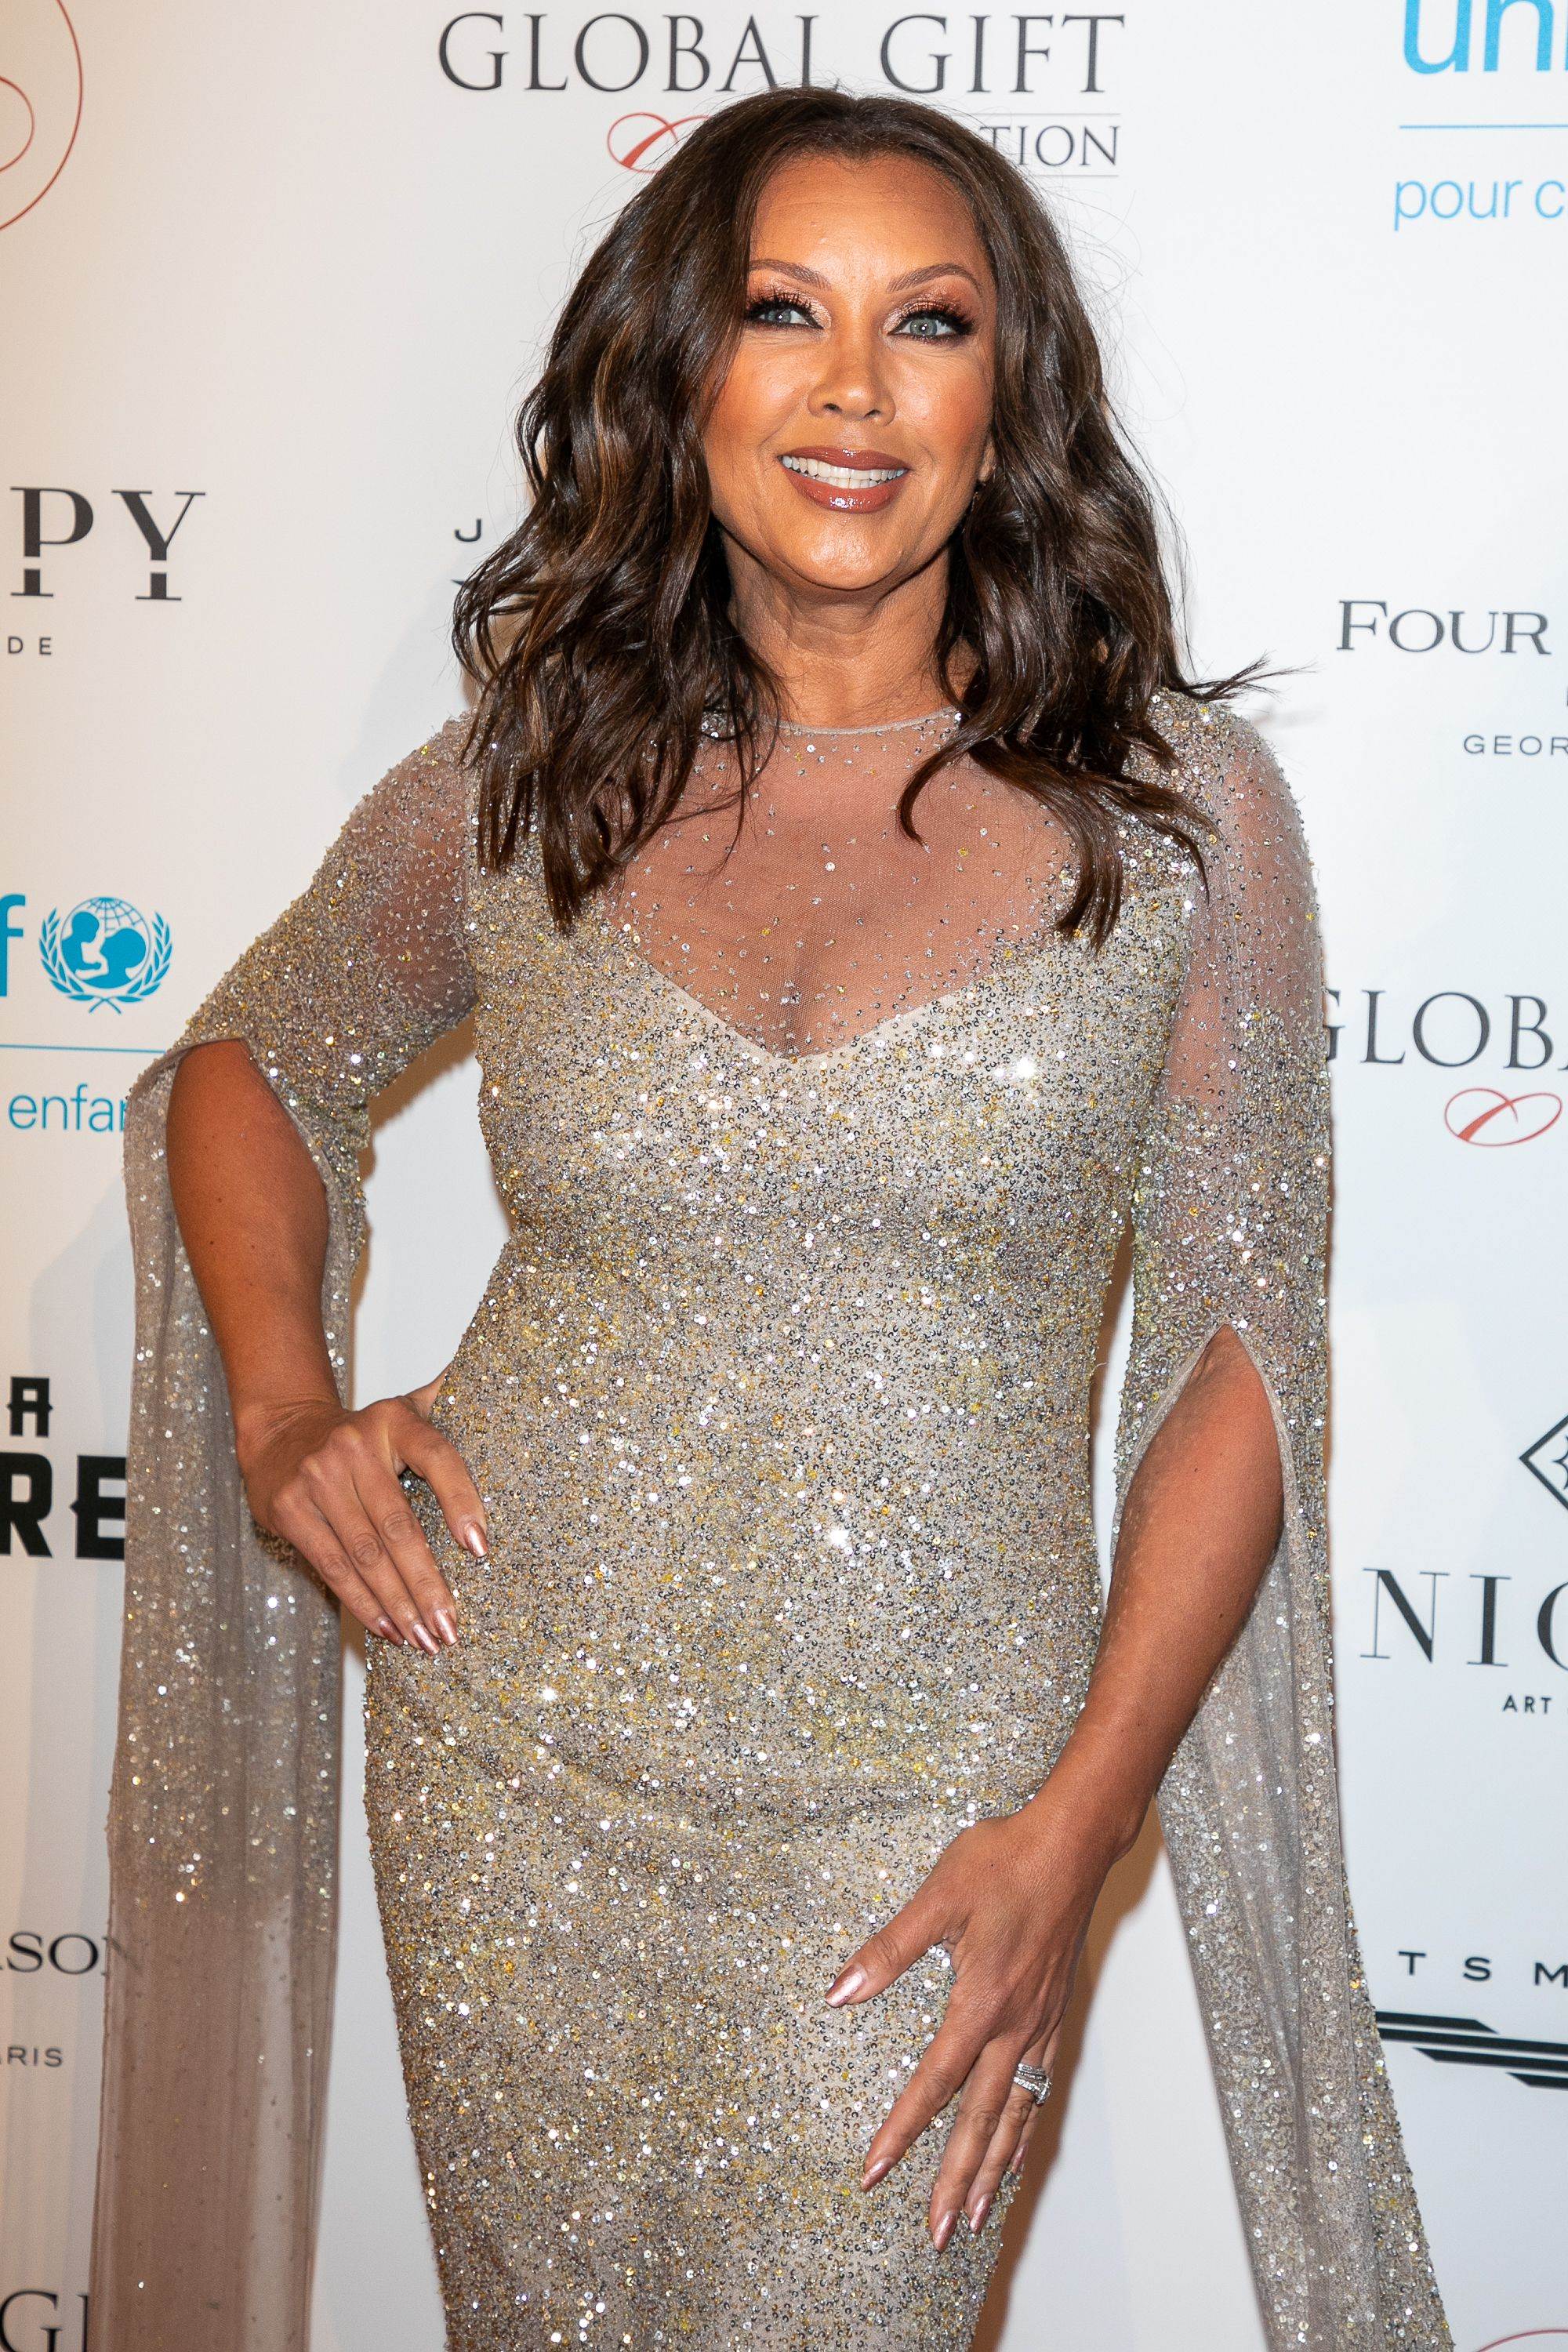 Vanessa Williams at the Global Gift Gala on April 25, 2018 in Paris.   Photo: Getty Images